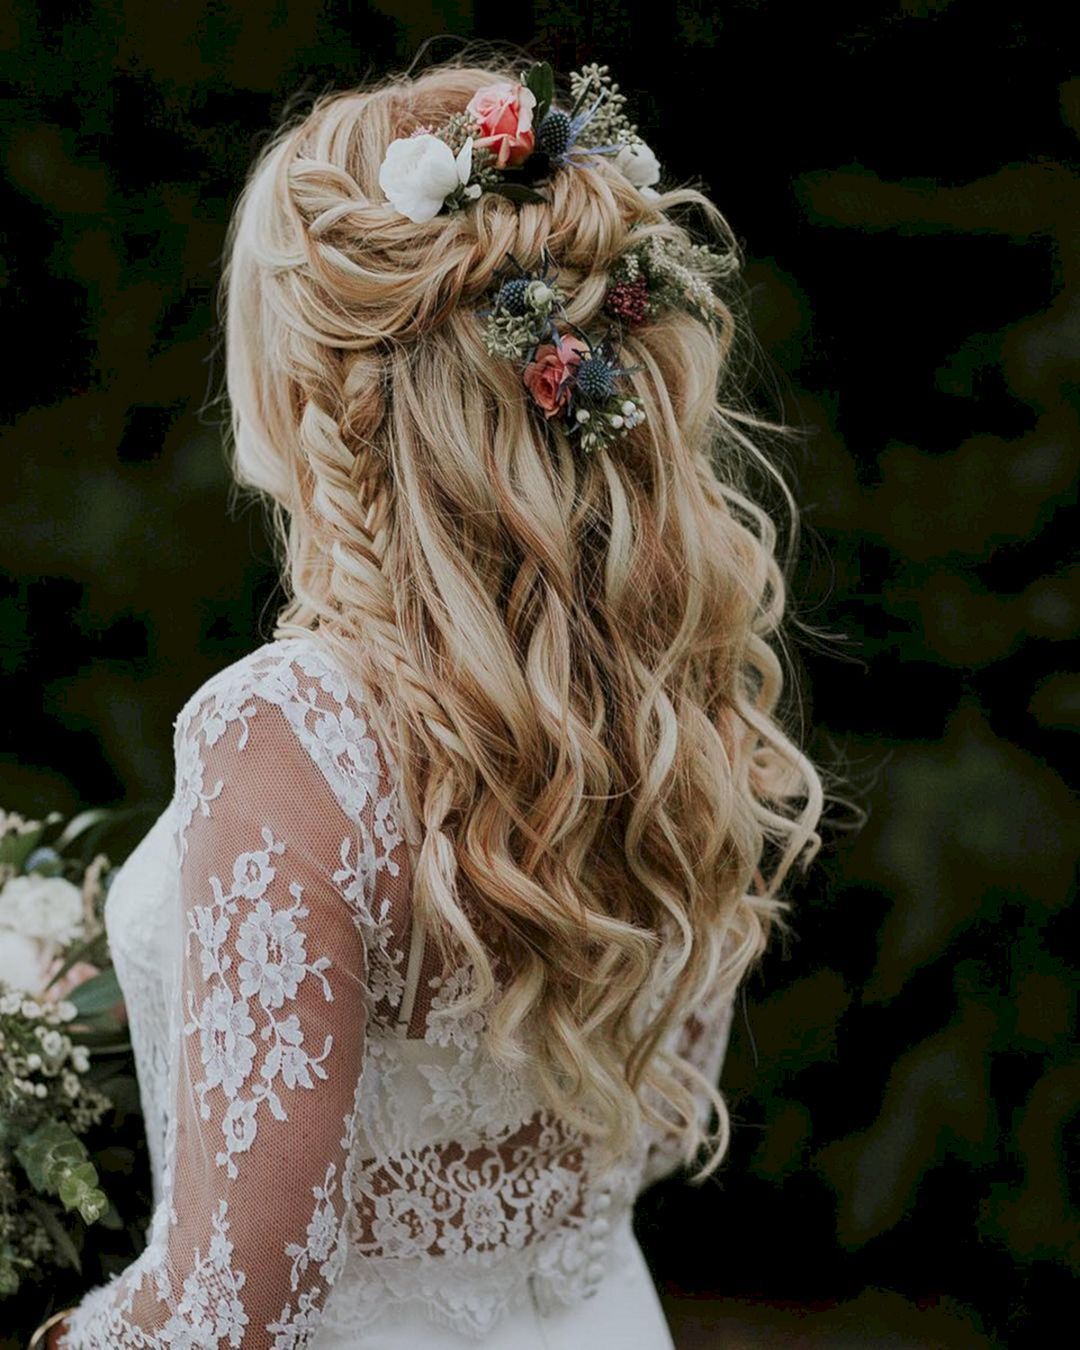 Boho Bridal Hairstyles For Carefree Bride: 20 Marvelous Boho Wedding Hairstyle Ideas You Must To See